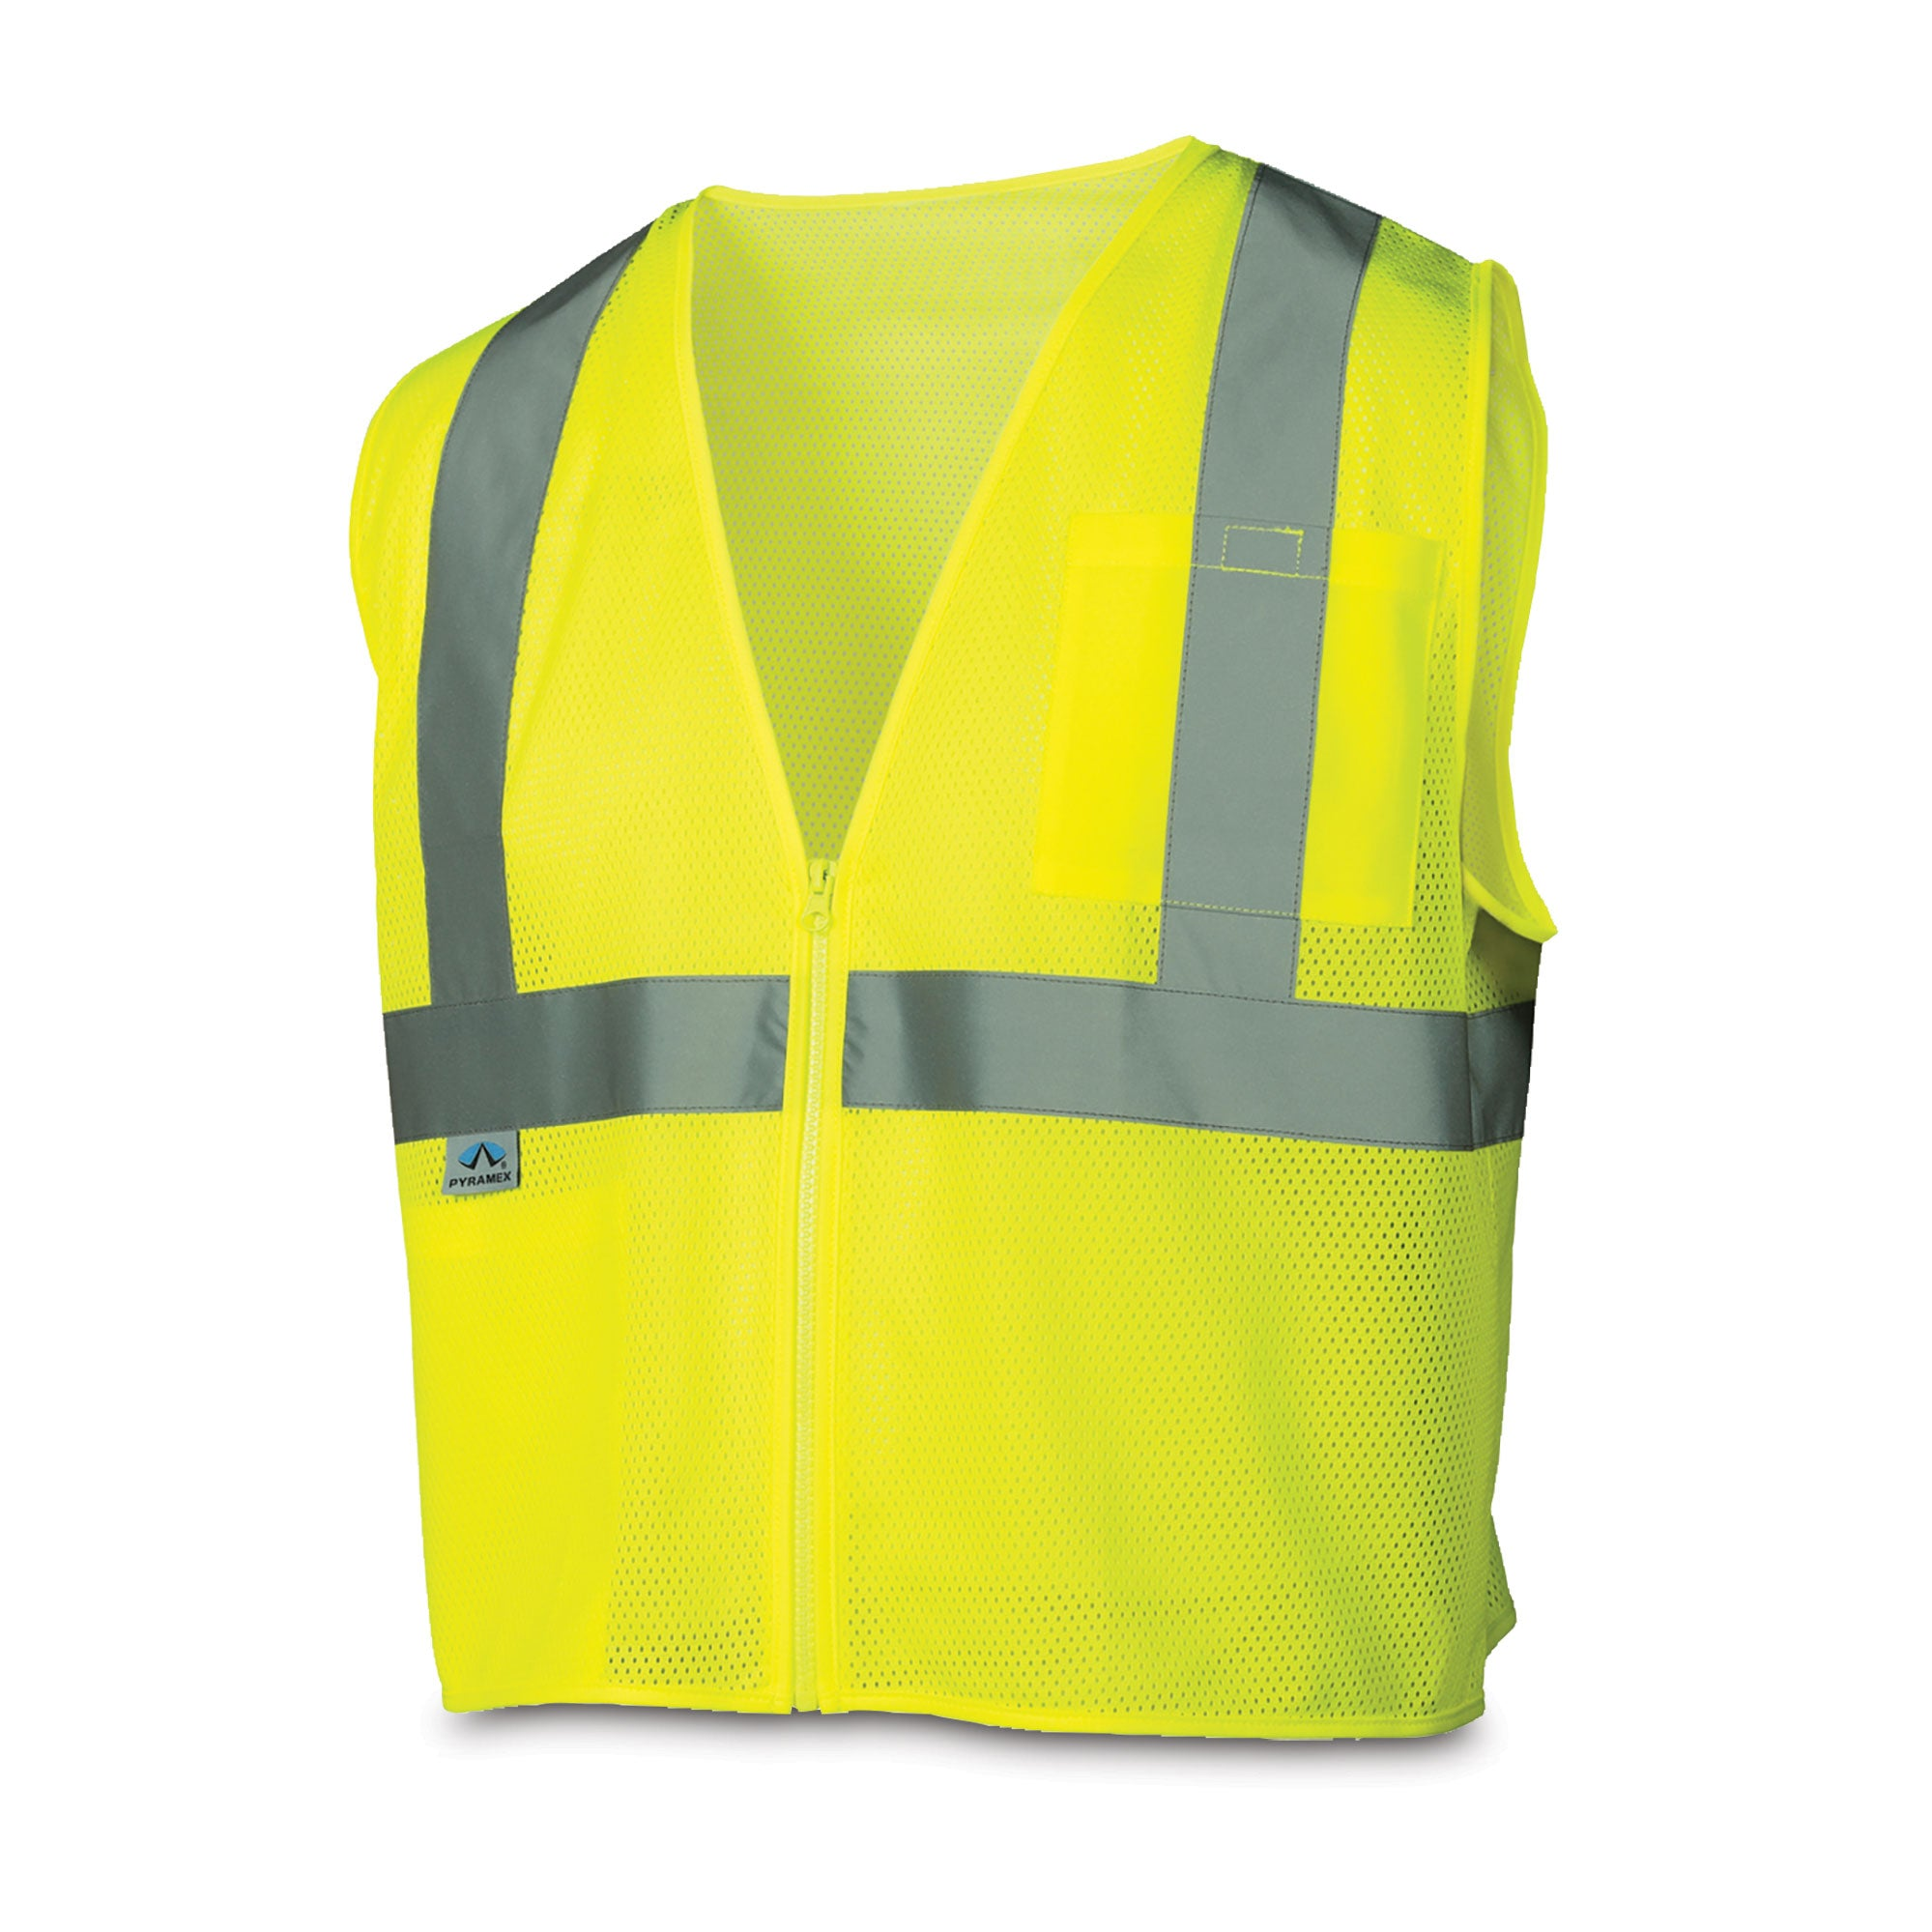 Reflective Vests with Two Pockets